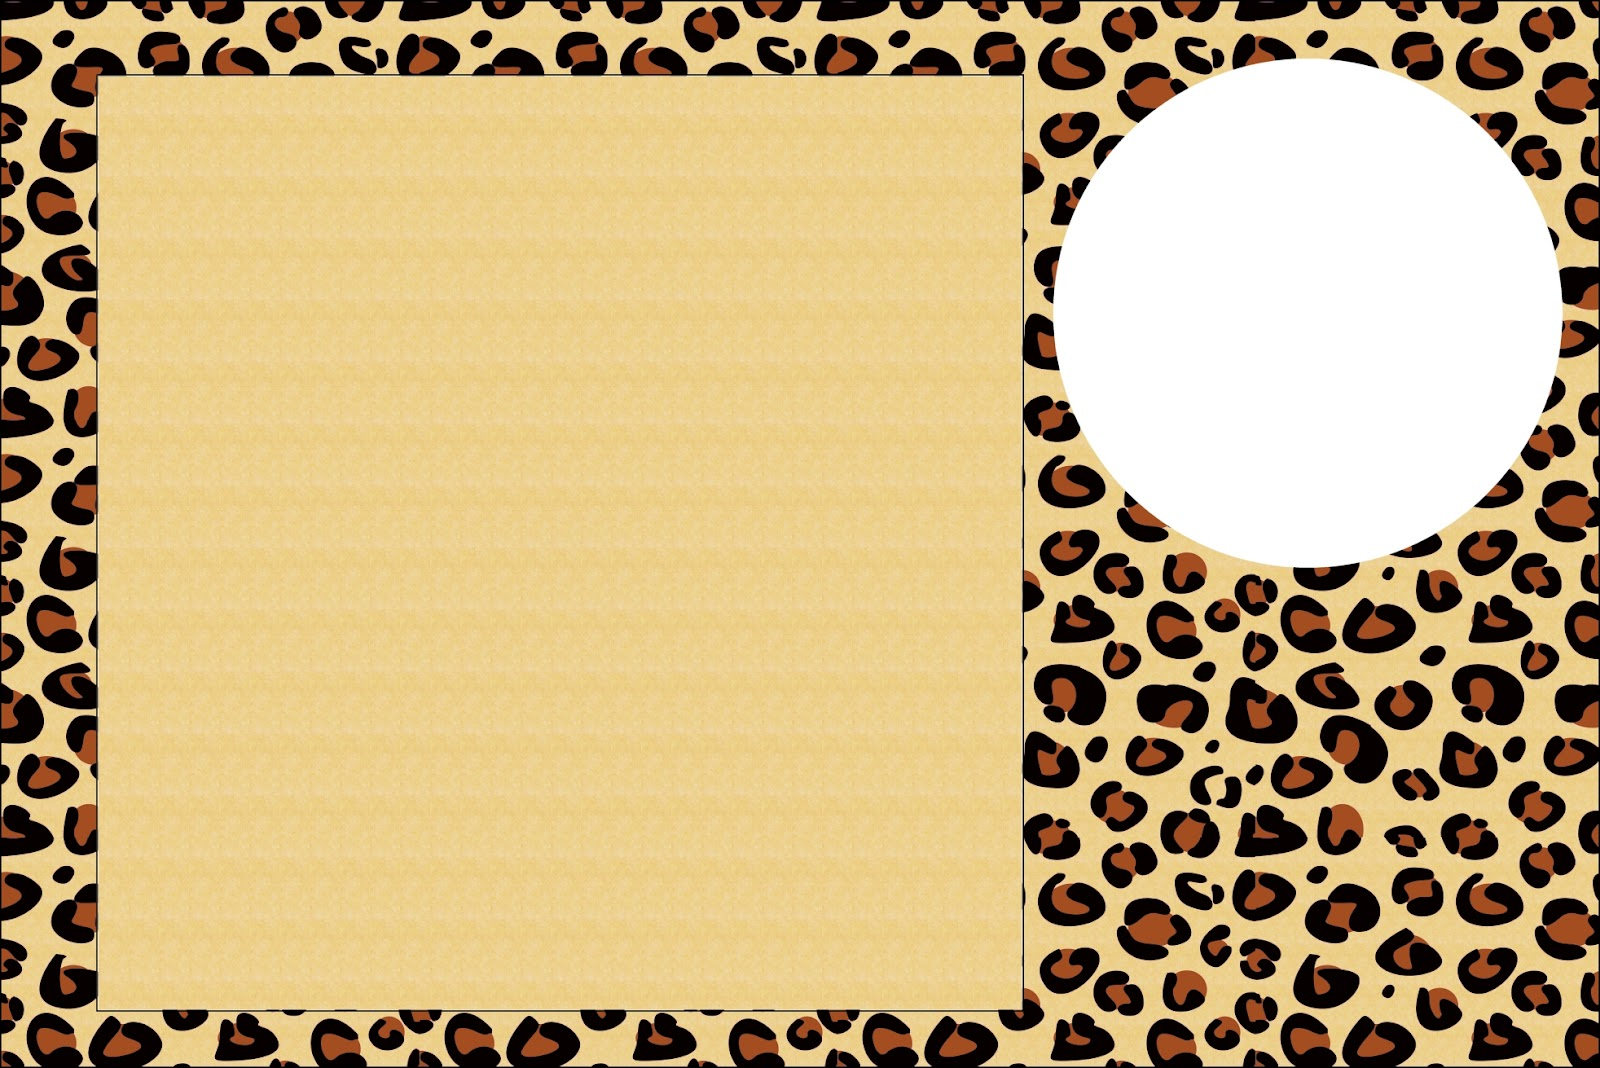 Leopard prints free printable invitations oh my fiesta for ladies leopard prints free printable invitation frame or cards maxwellsz